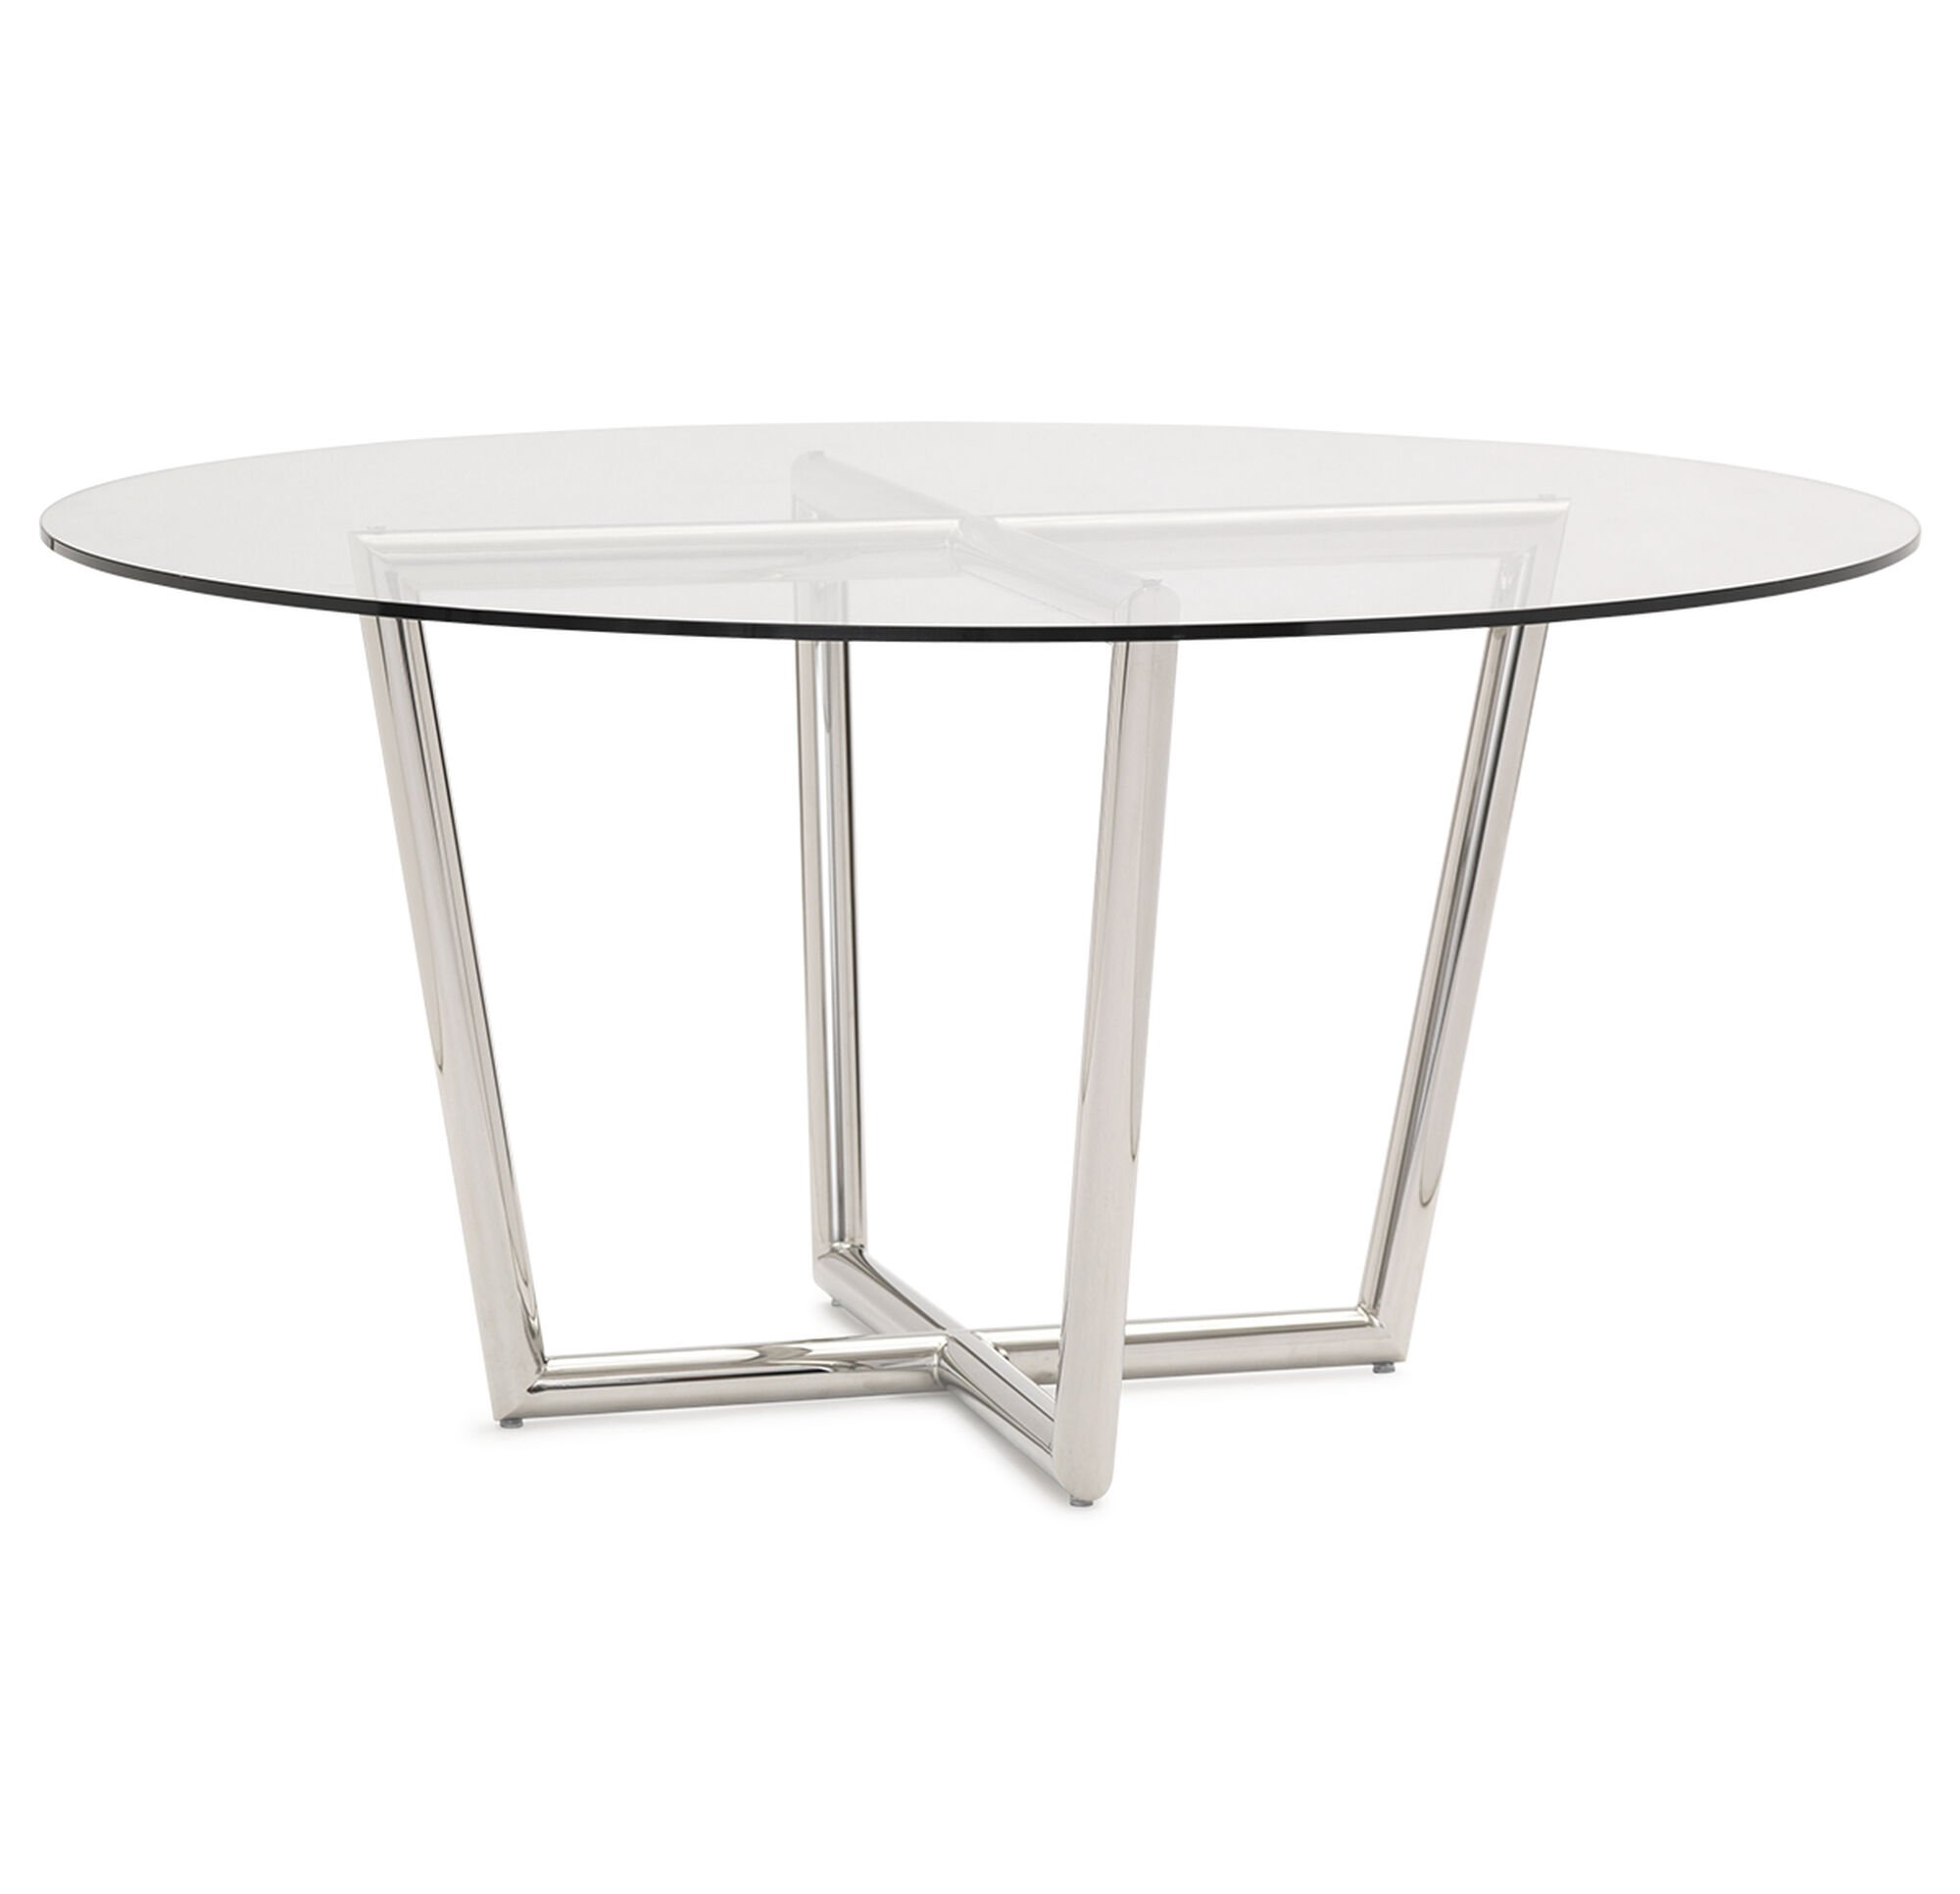 Modern round dining table polished stainless steel for Stainless steel dining table